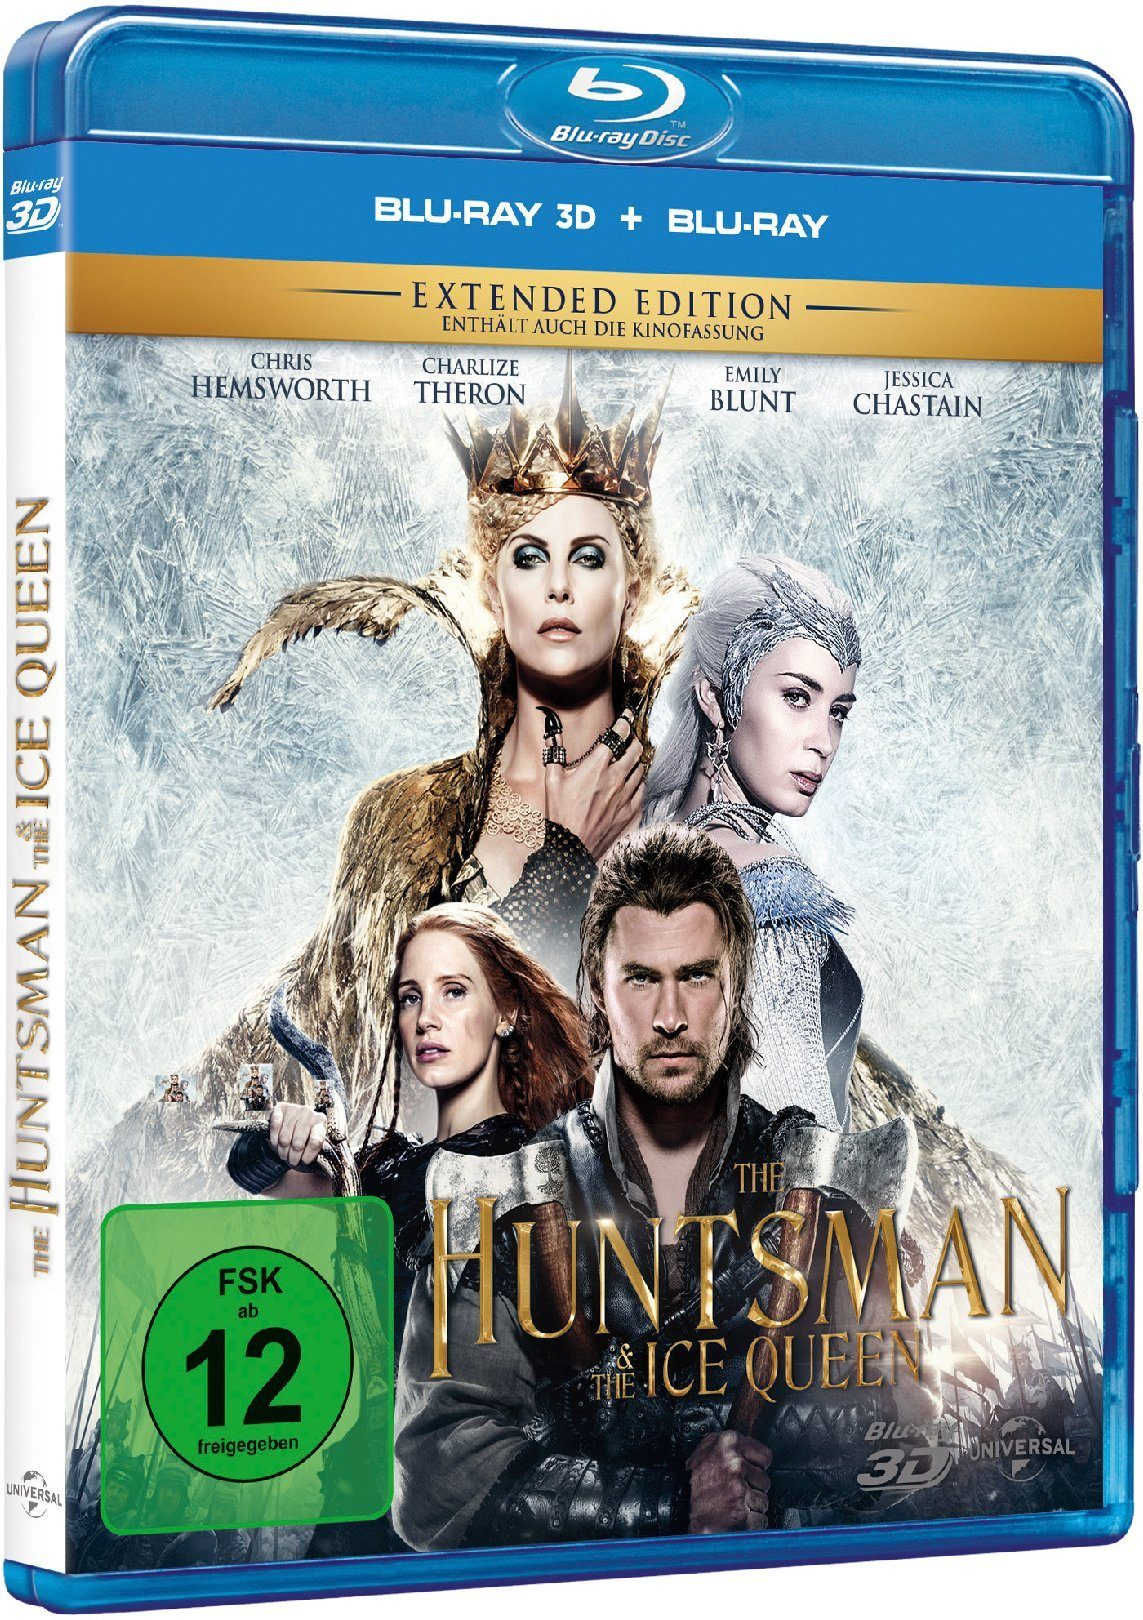 Universal The Huntsman & The Ice Queen 3D (Extended Edition + Kinofassung) »Blu-ray«